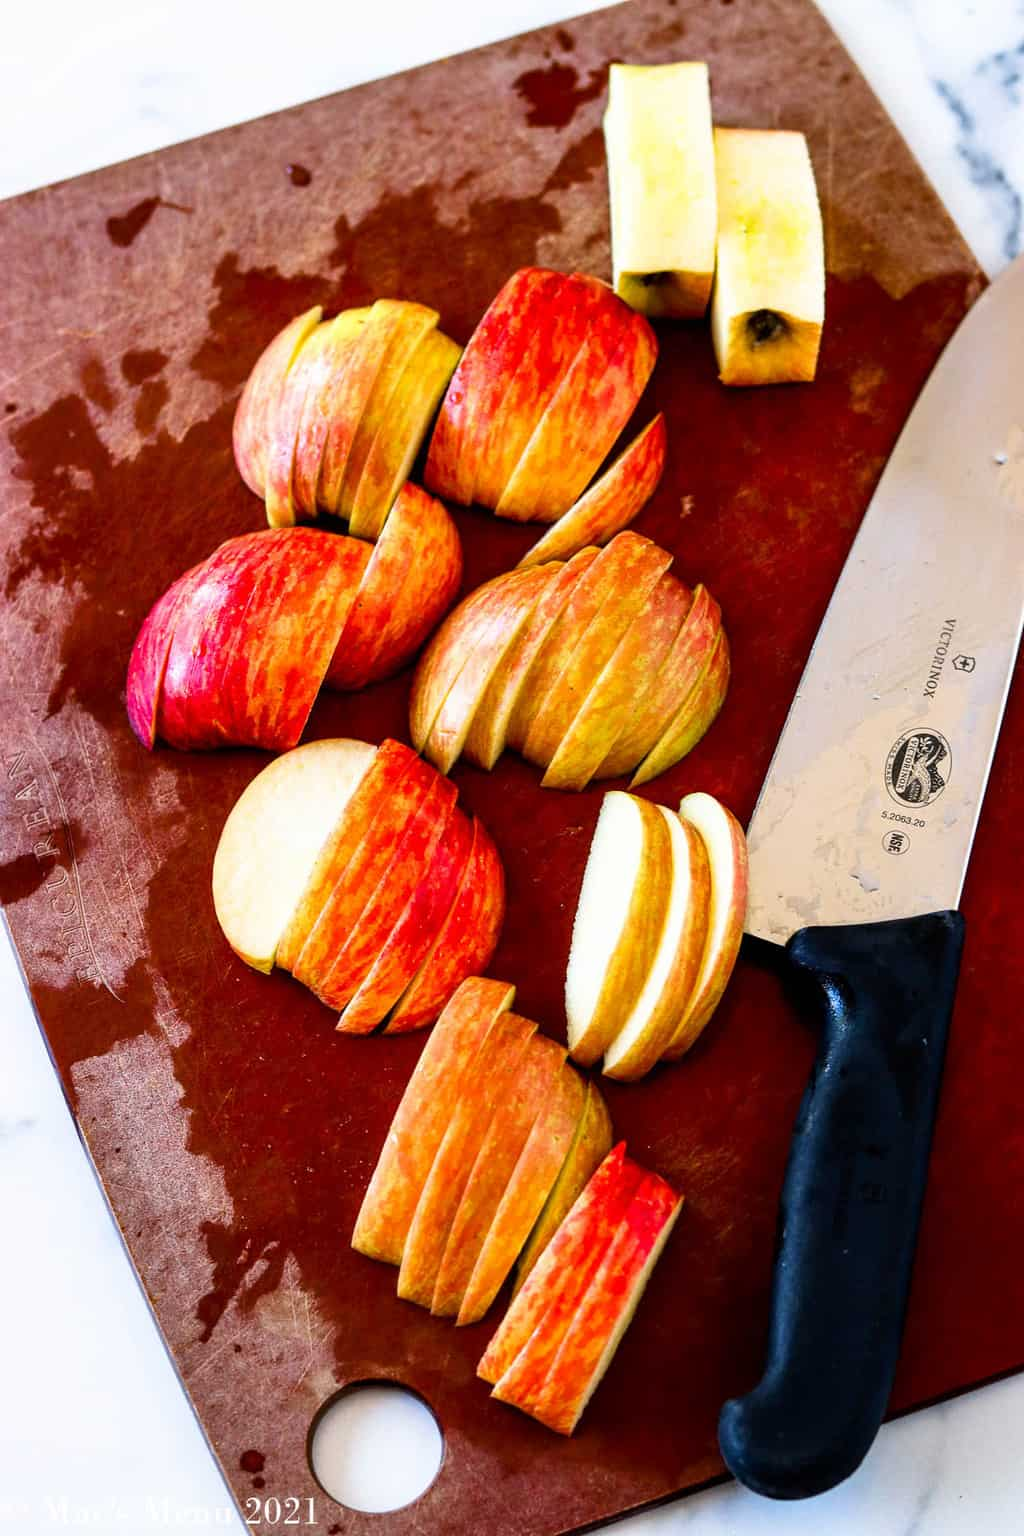 Sliced apples on a cutting board with a chef knife